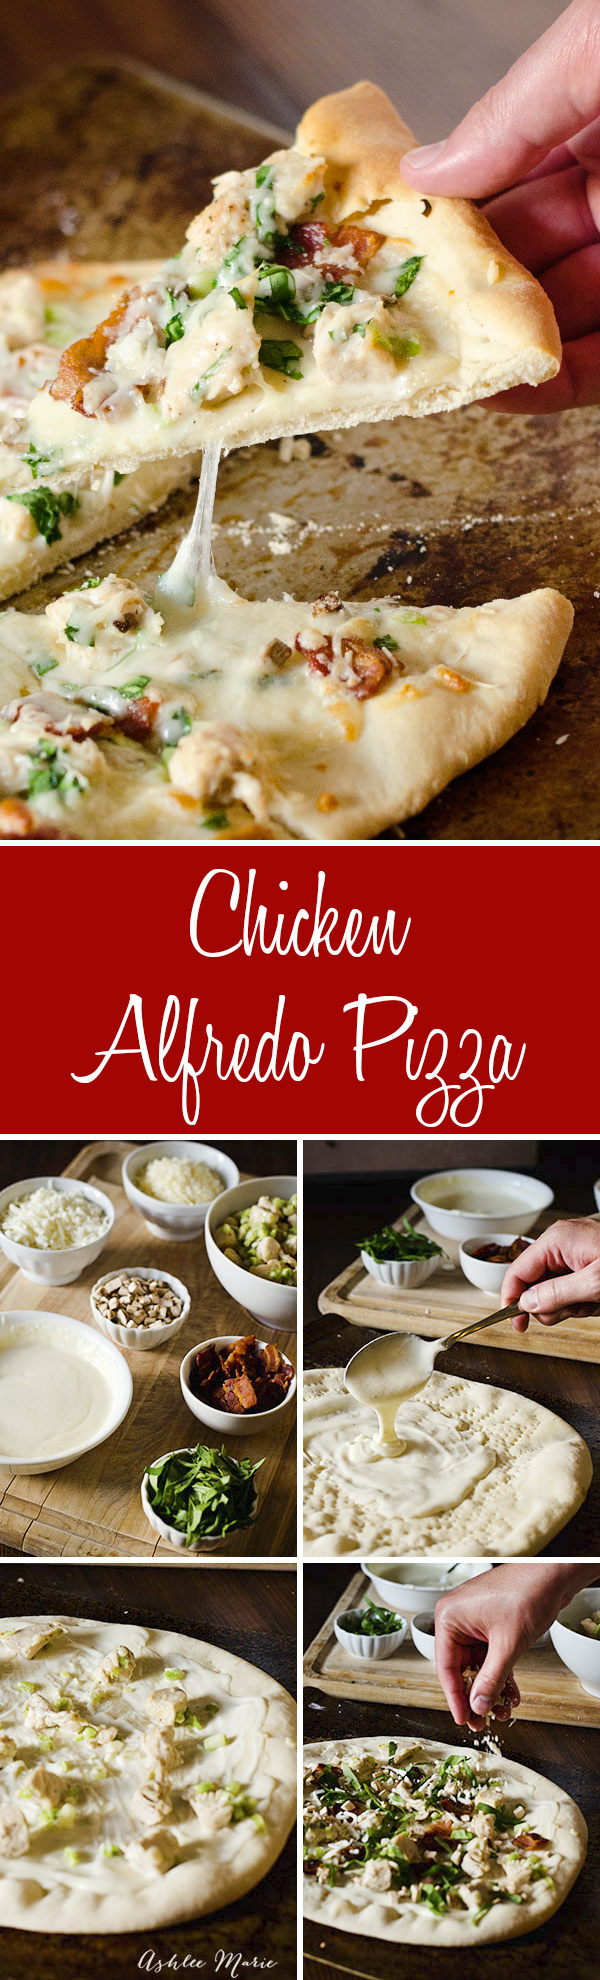 chicken alfredo pizza is amazing, I precook the crust half way so you don't dry out the toppings too much